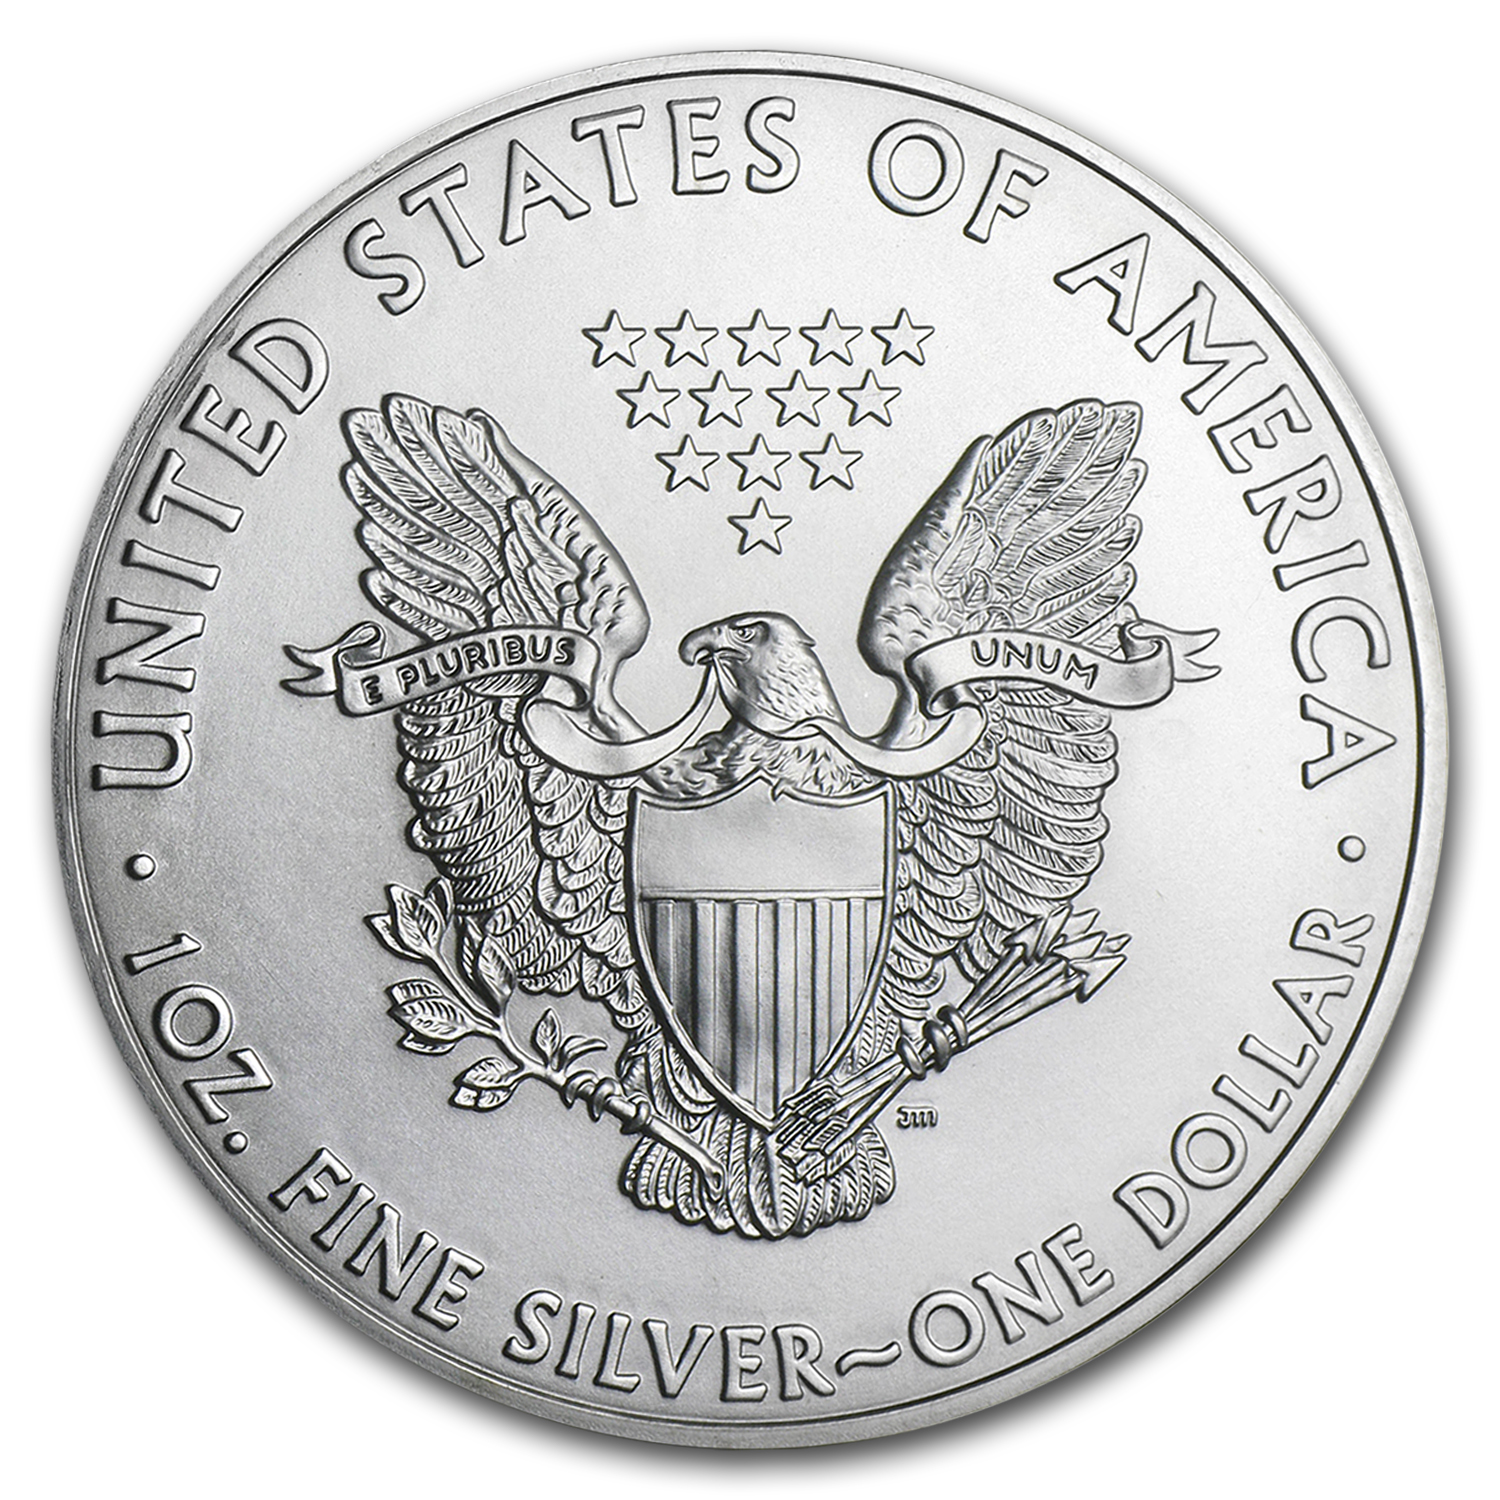 2011 1 oz Silver Eagle SF Mint (20-Coin MintDirect® Tube)